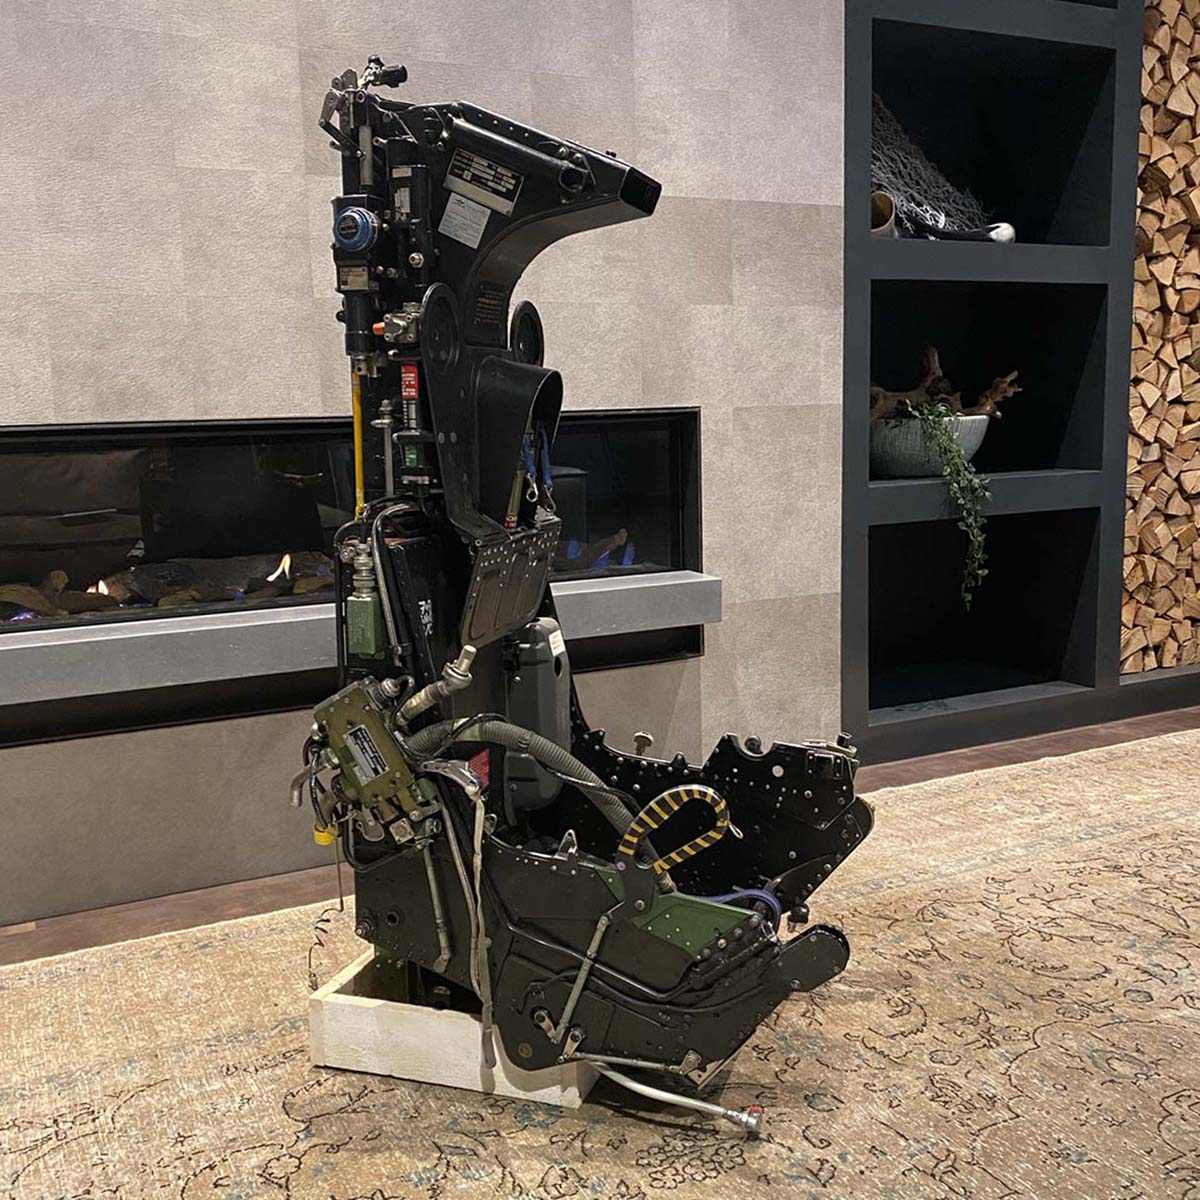 For sale: Martin Baker ejection seat in front of a fireplace.